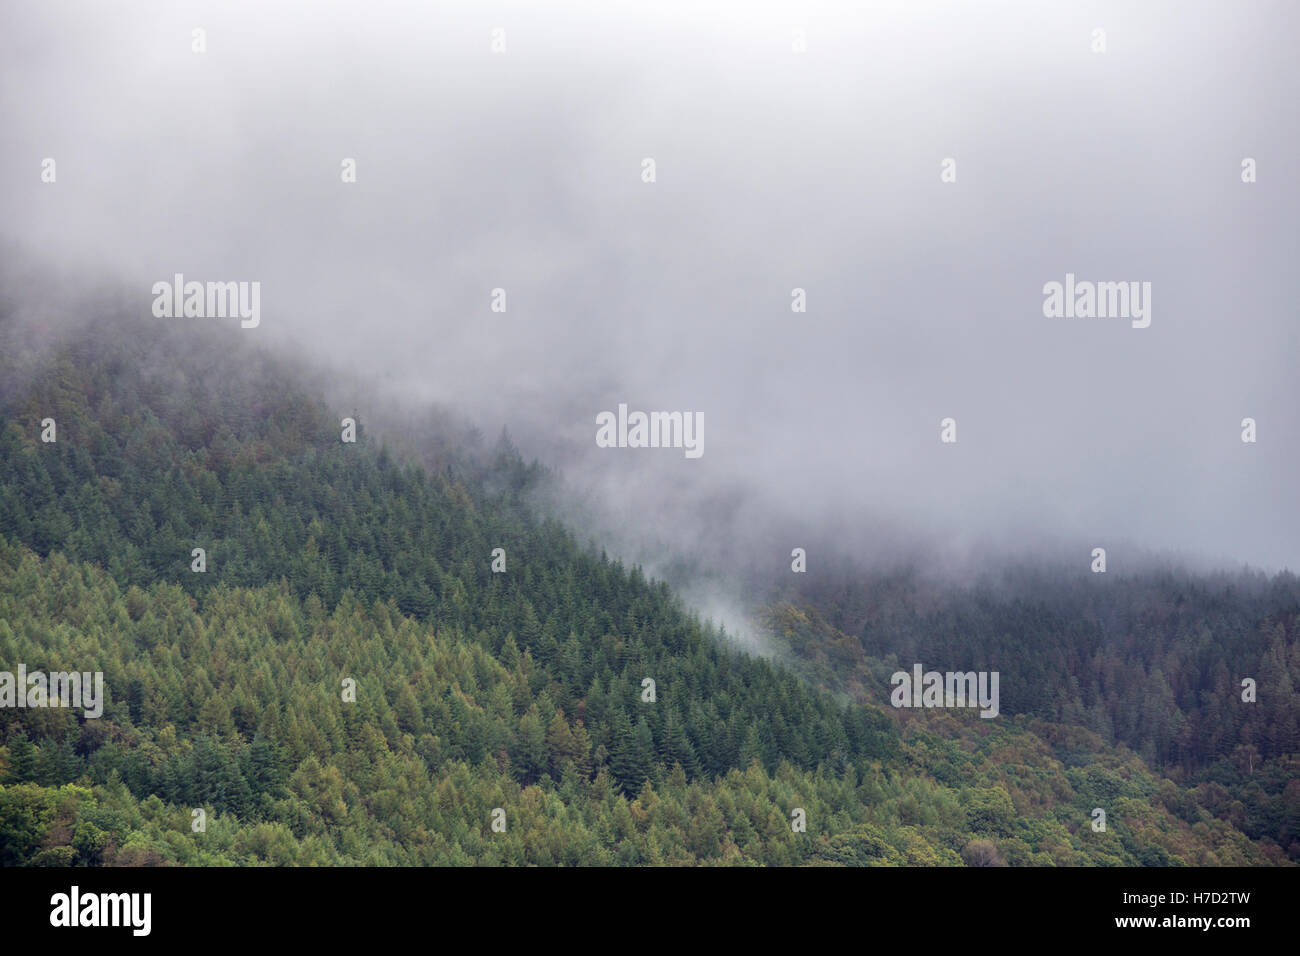 A misty coniferous forests, Britain, UK - Stock Image